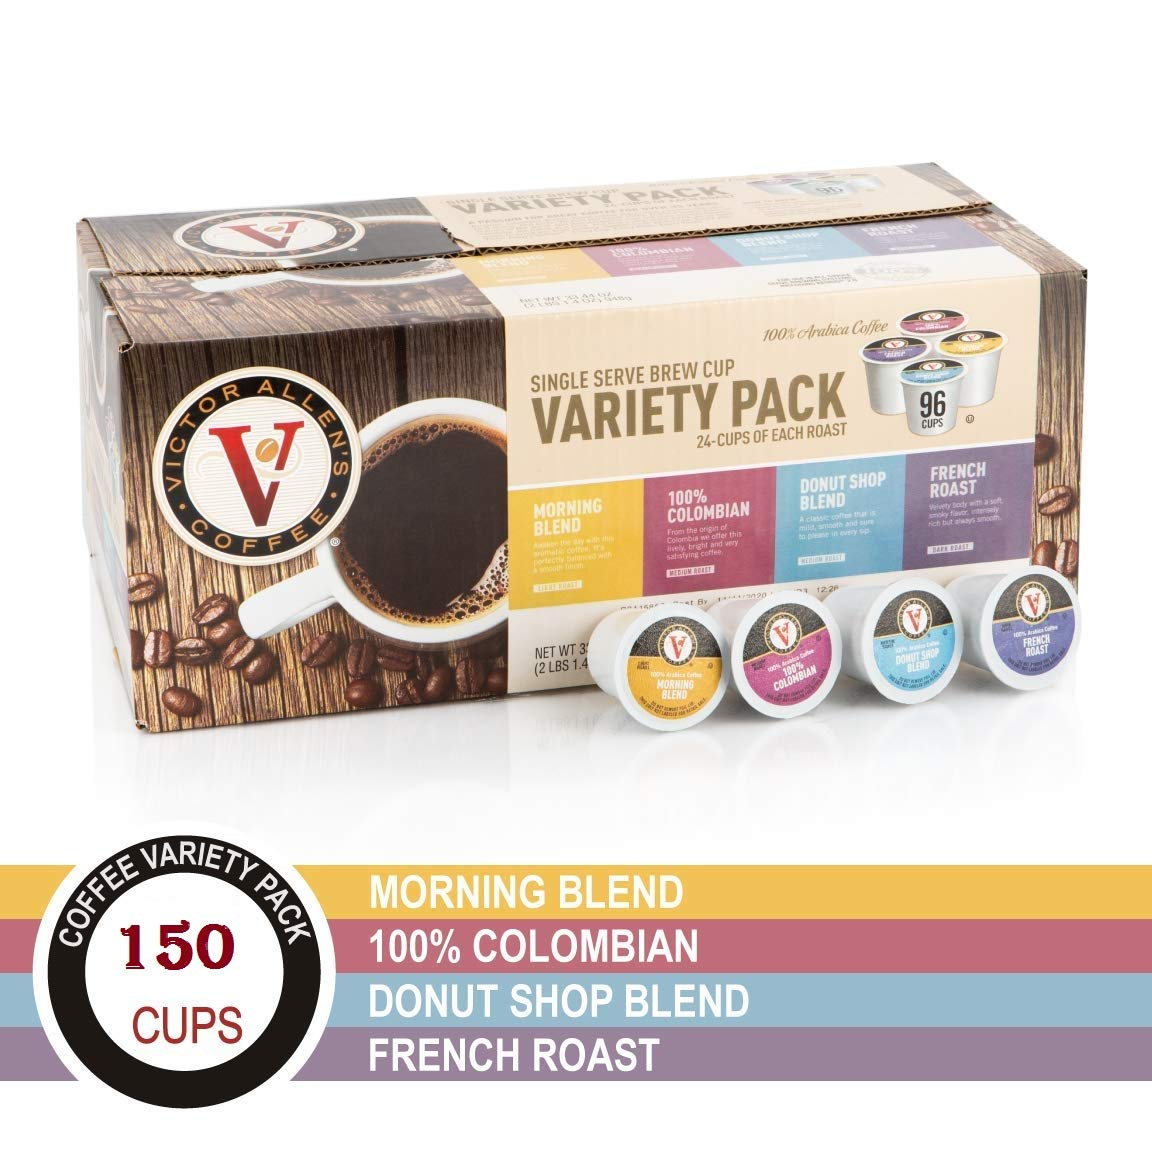 Donut Shop, Morning Blend, 100% Colombian, and French Roast Variety Pack for K-Cup, Keurig 2.0 Brewers, 150 Count Victor Allen's Coffee Single Serve Coffee Pods (150 Count)